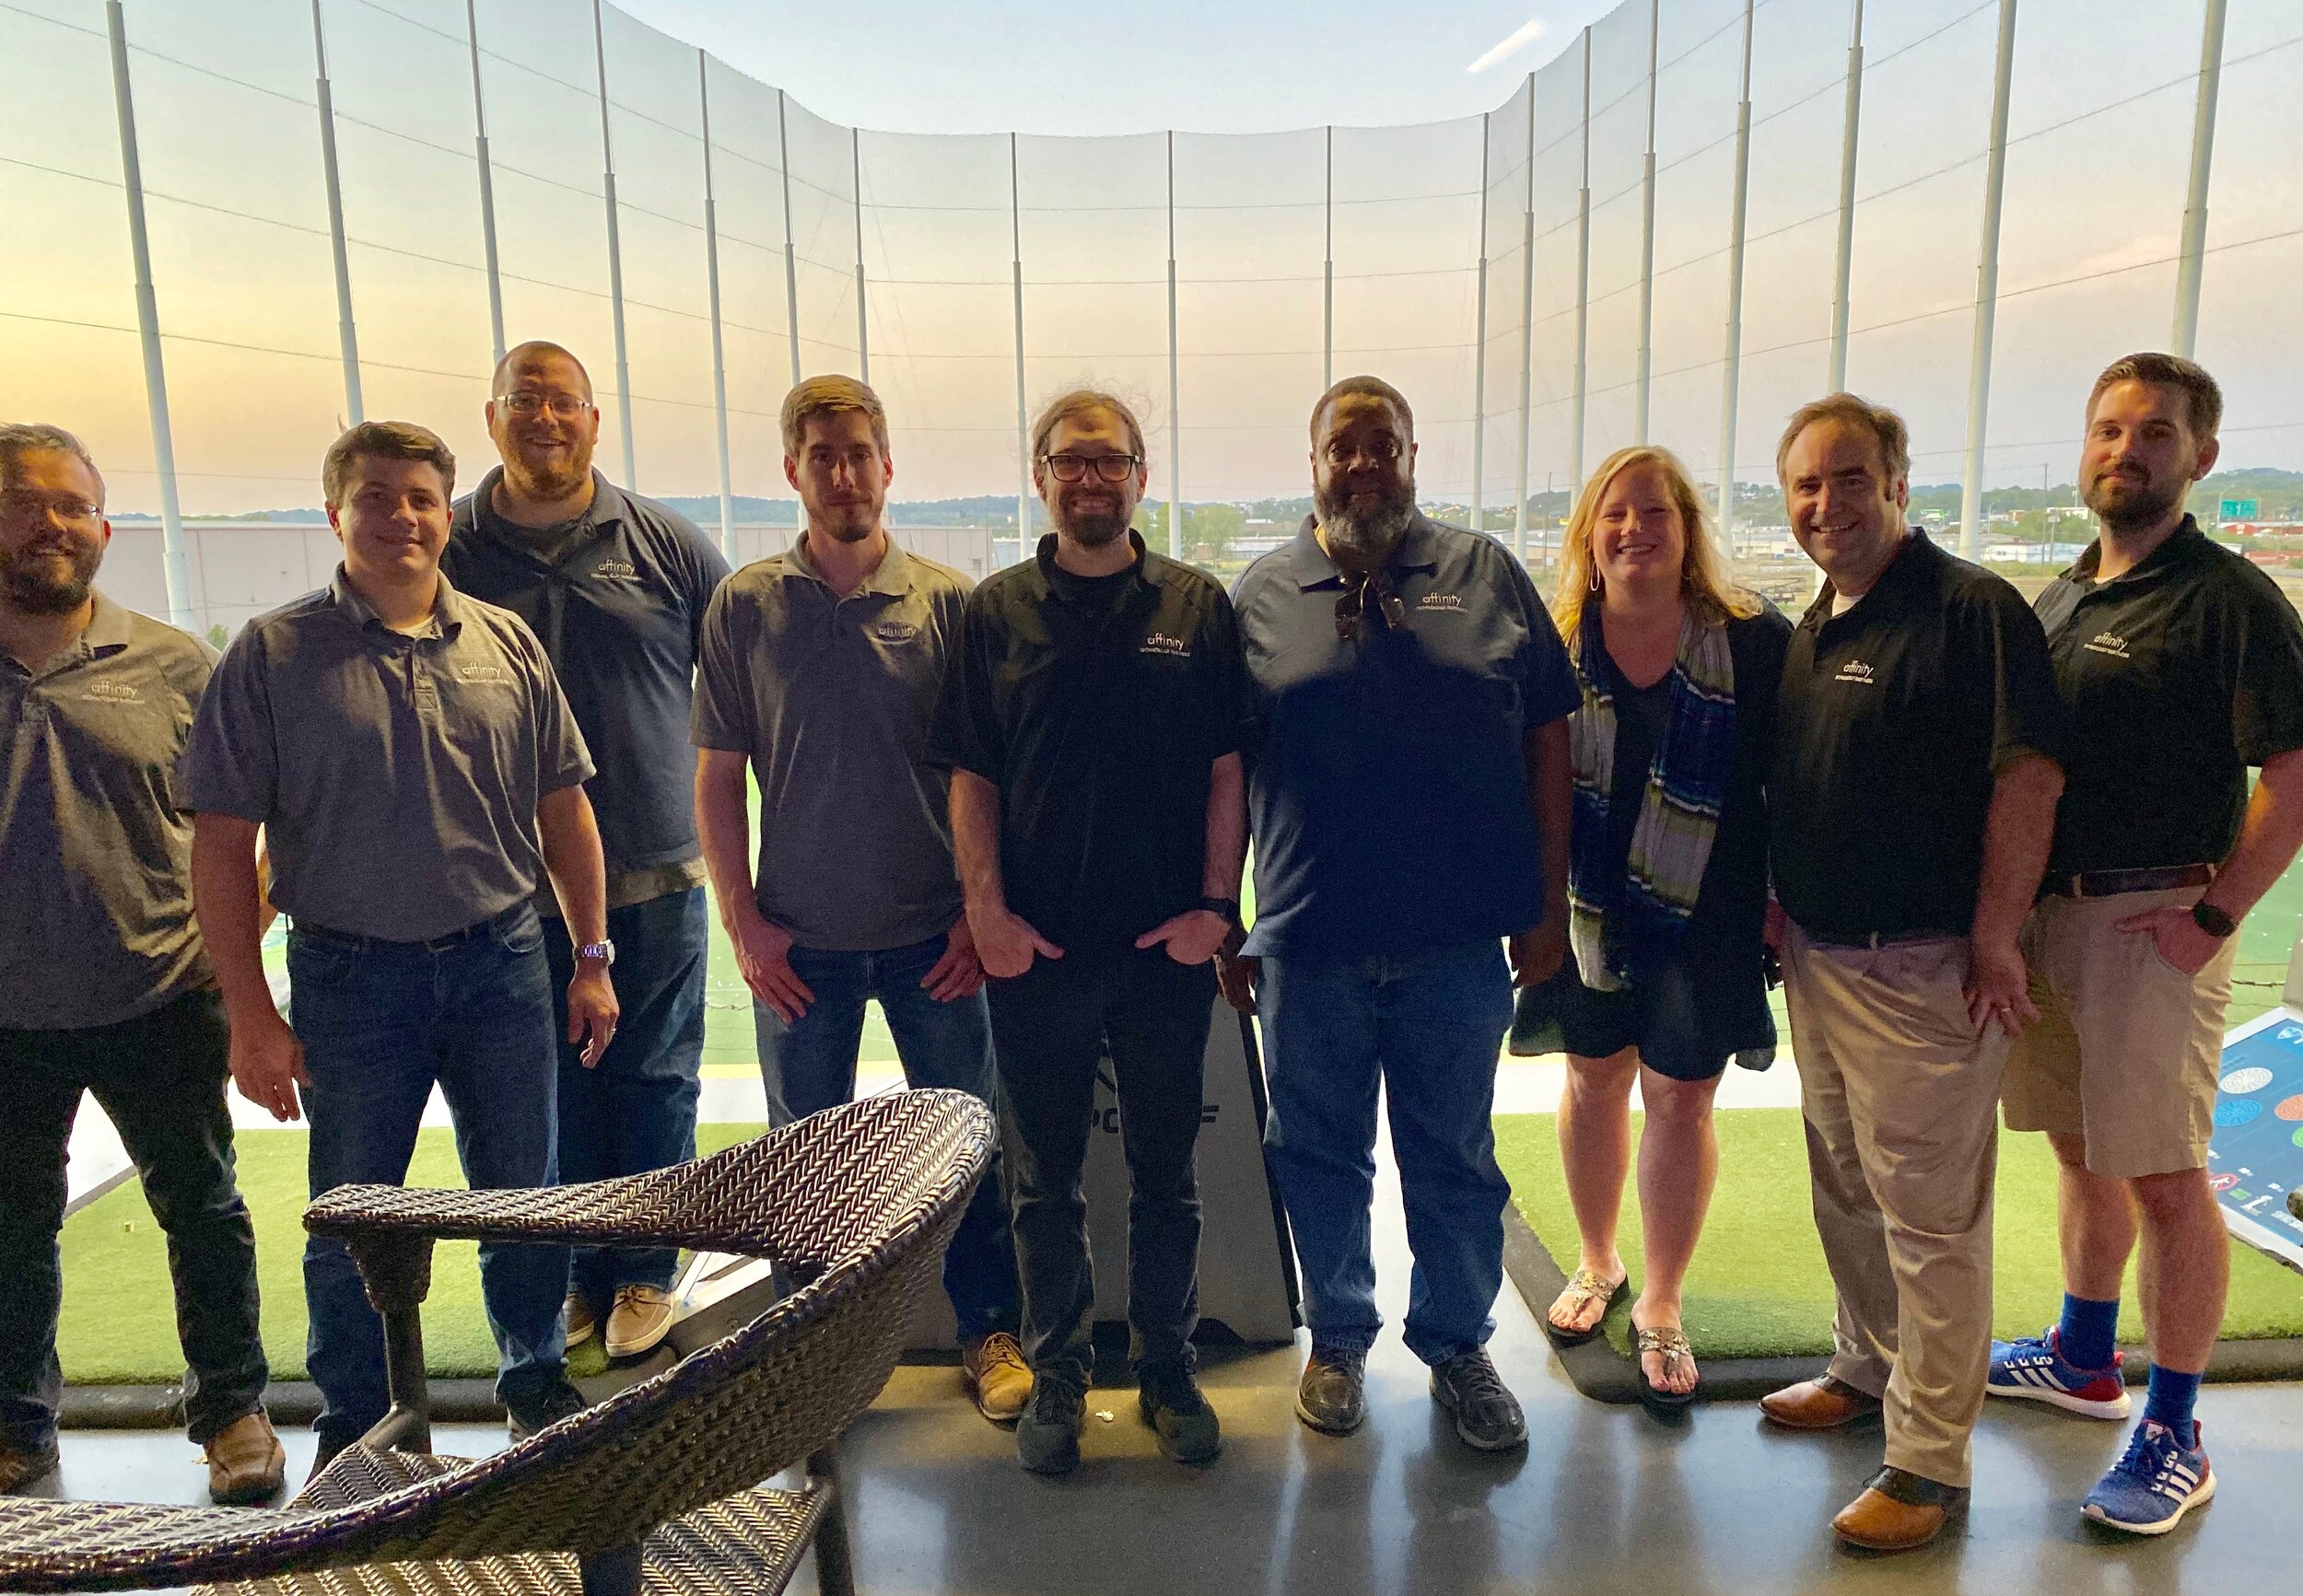 Affinity-Technology-Partners-Top-Golf-Outing-1.jpeg